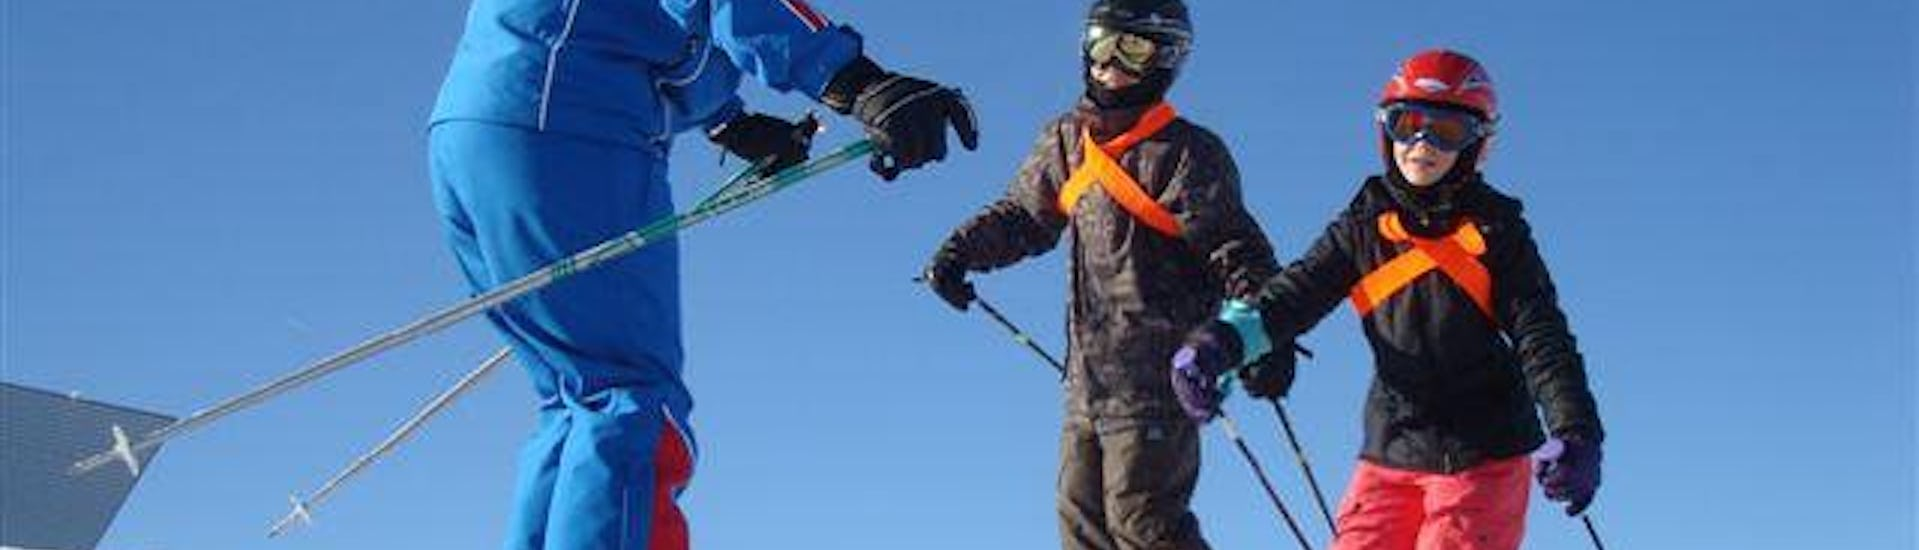 """""""Valles"""" Ski Lessons for Kids (3-14 Years) - Advanced"""